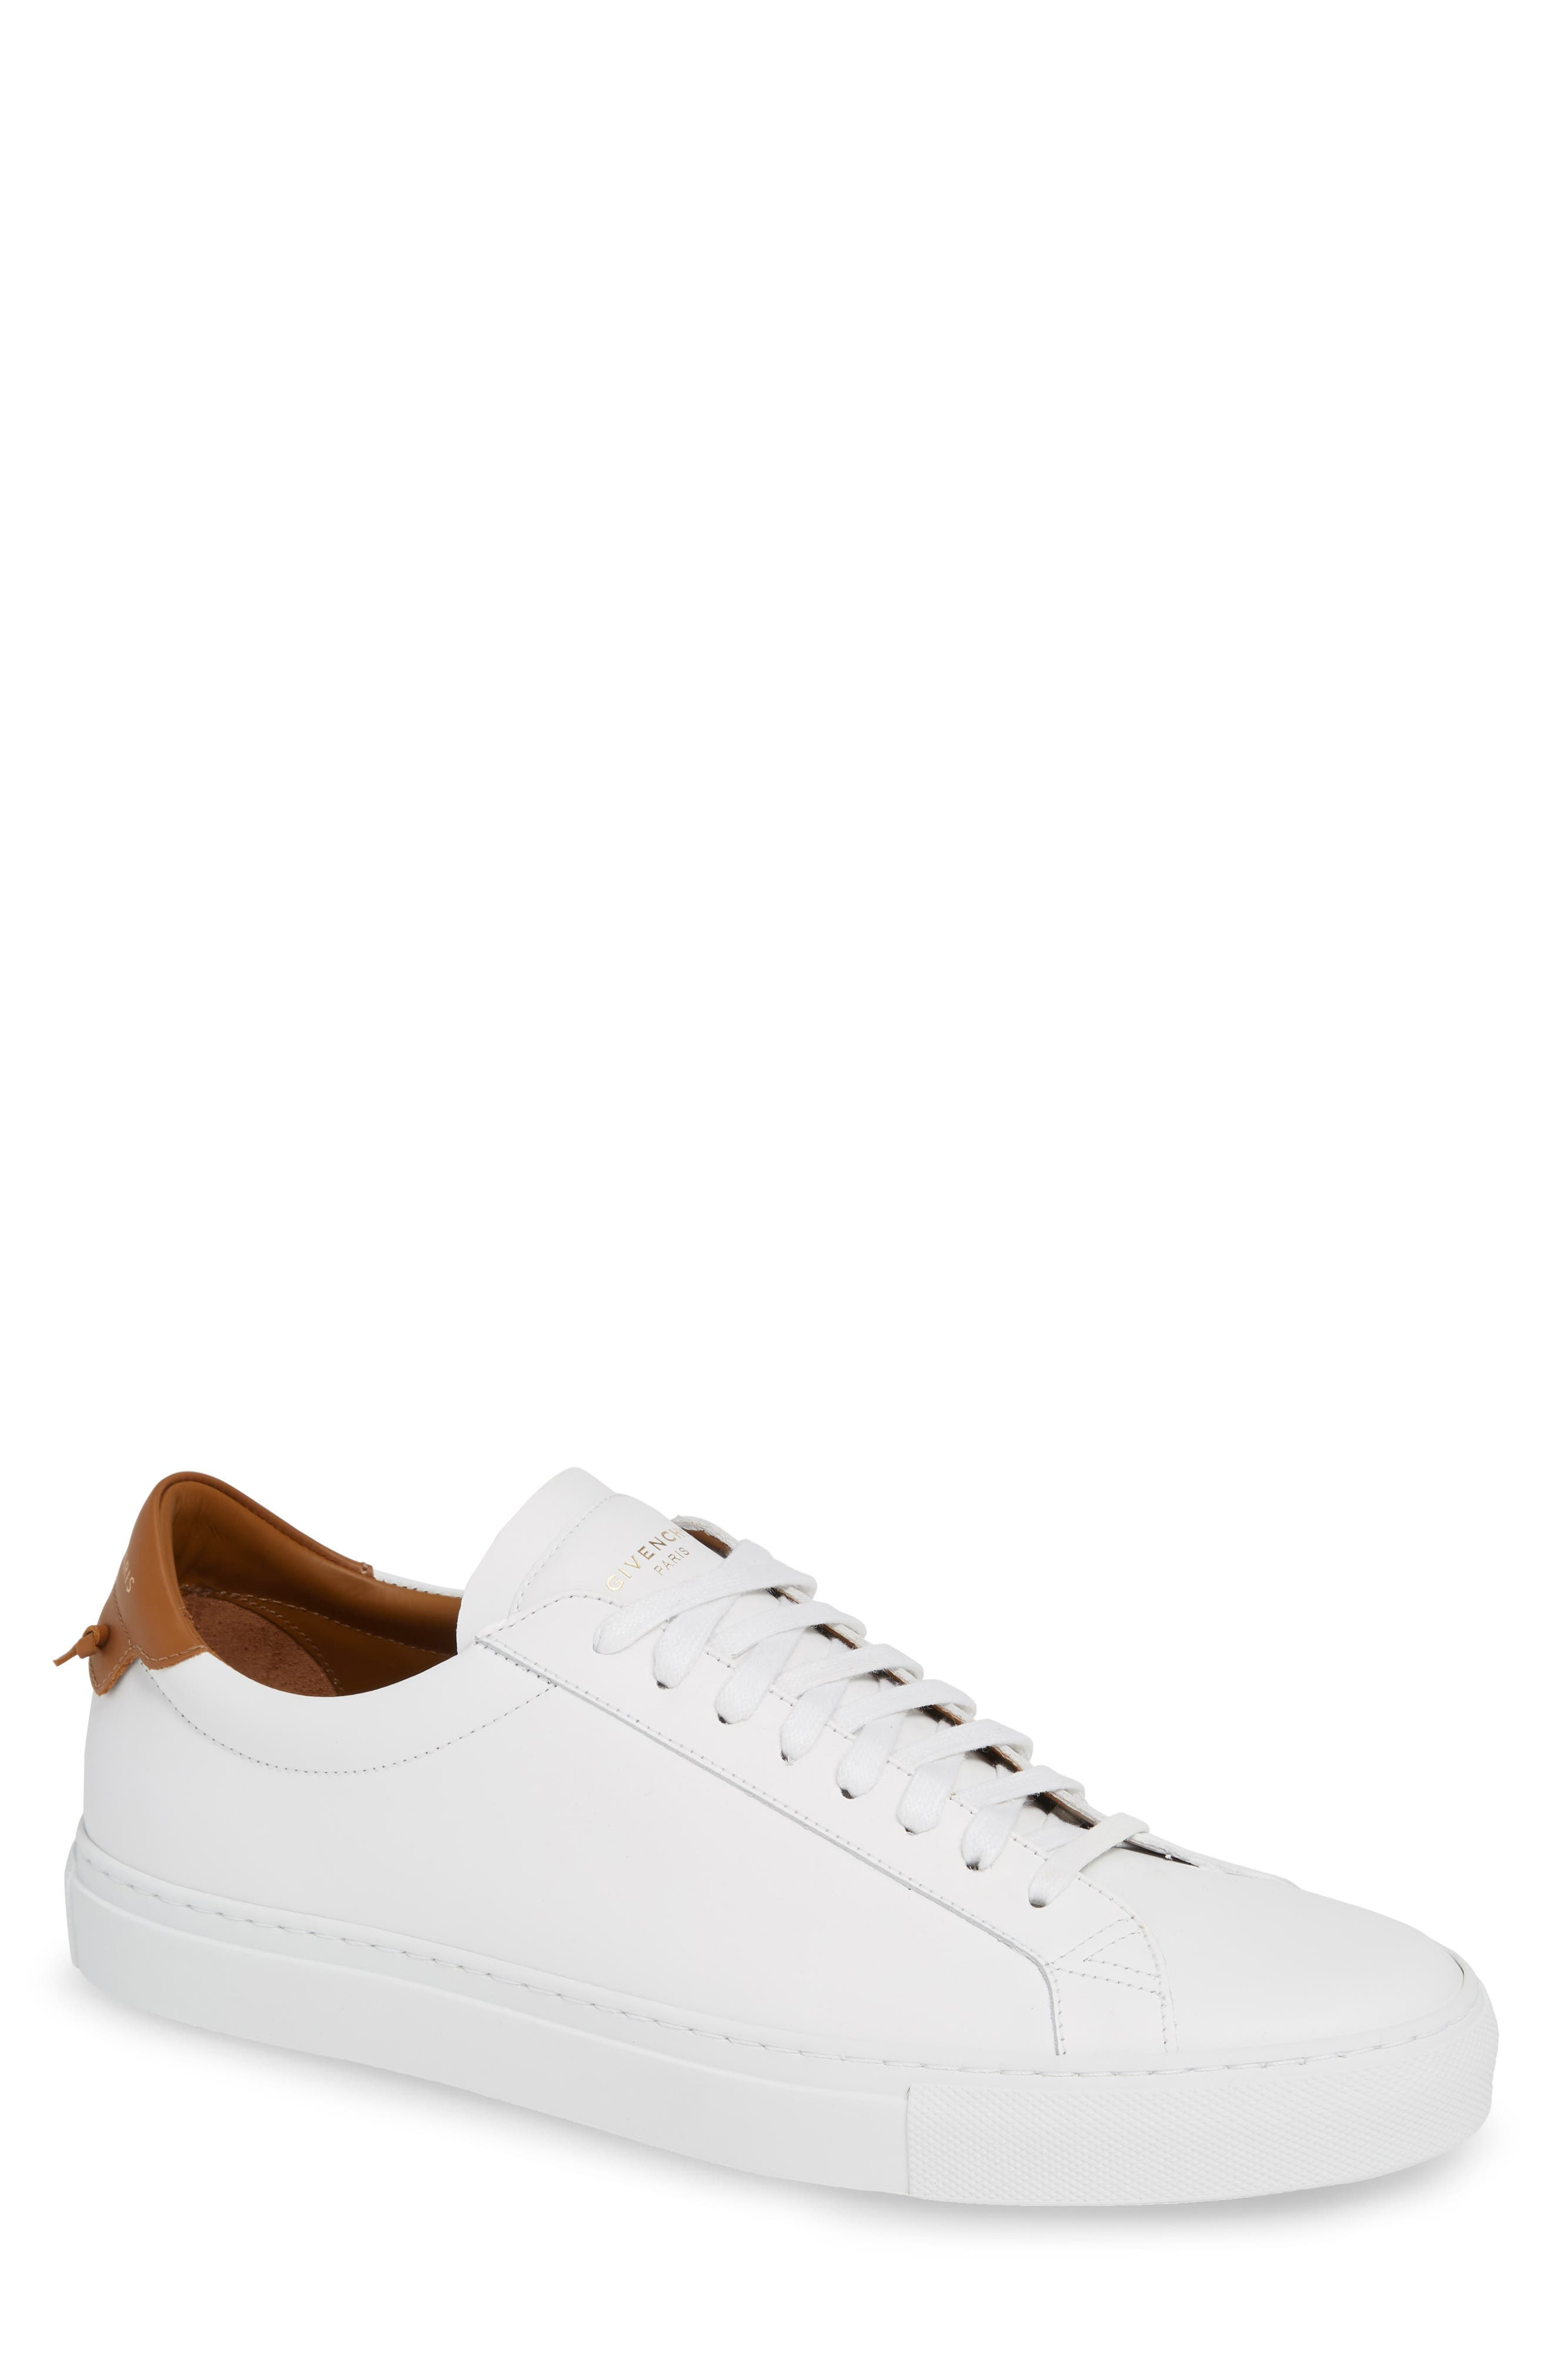 'urban Knots Lo' Sneaker by Givenchy